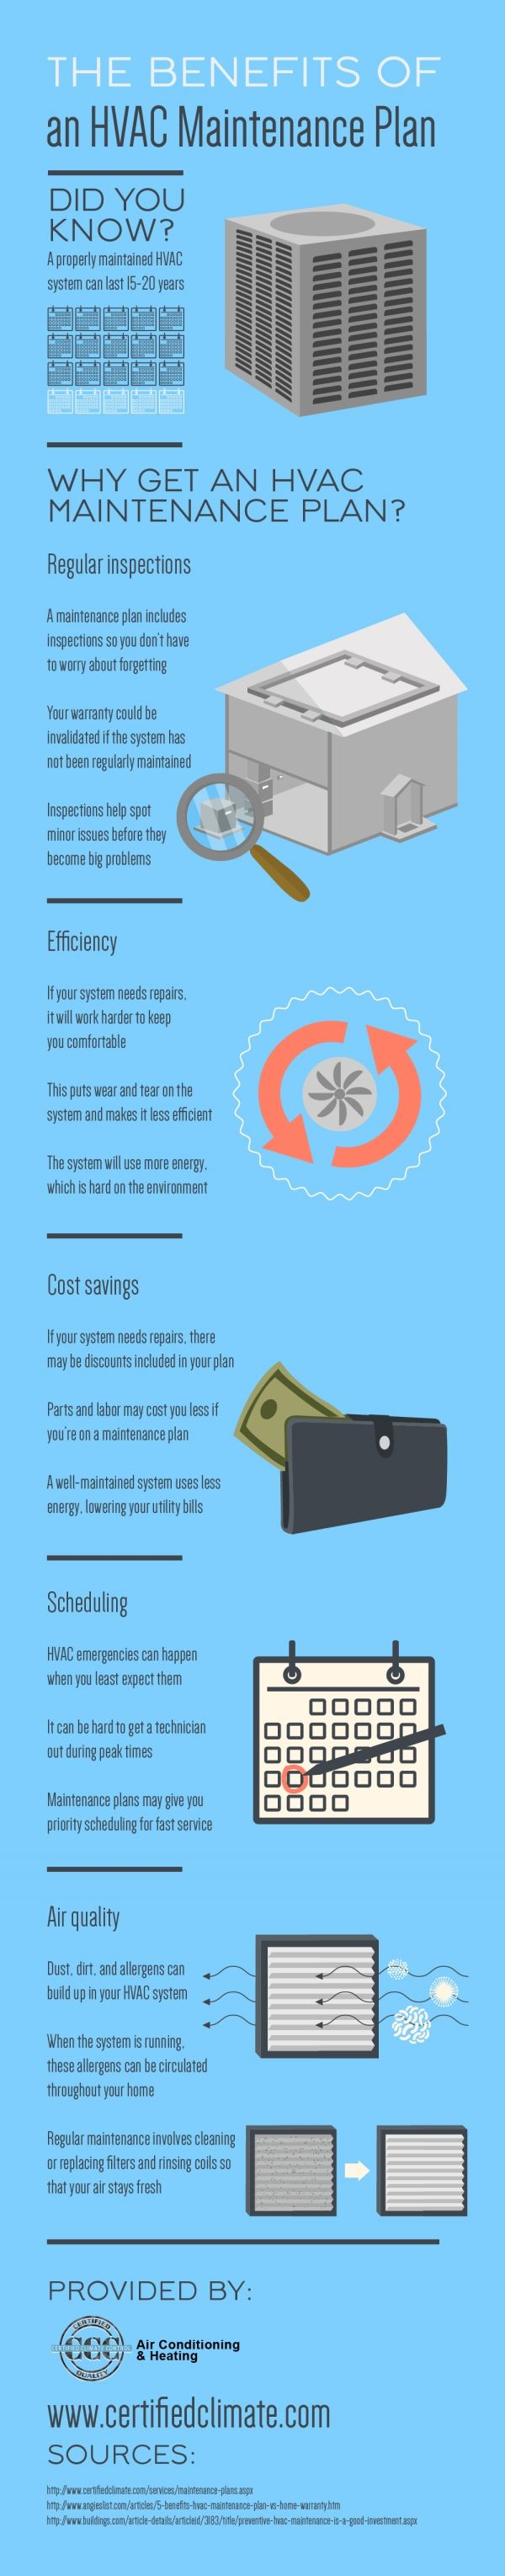 149 best All About HVAC images on Pinterest   Infographic ...